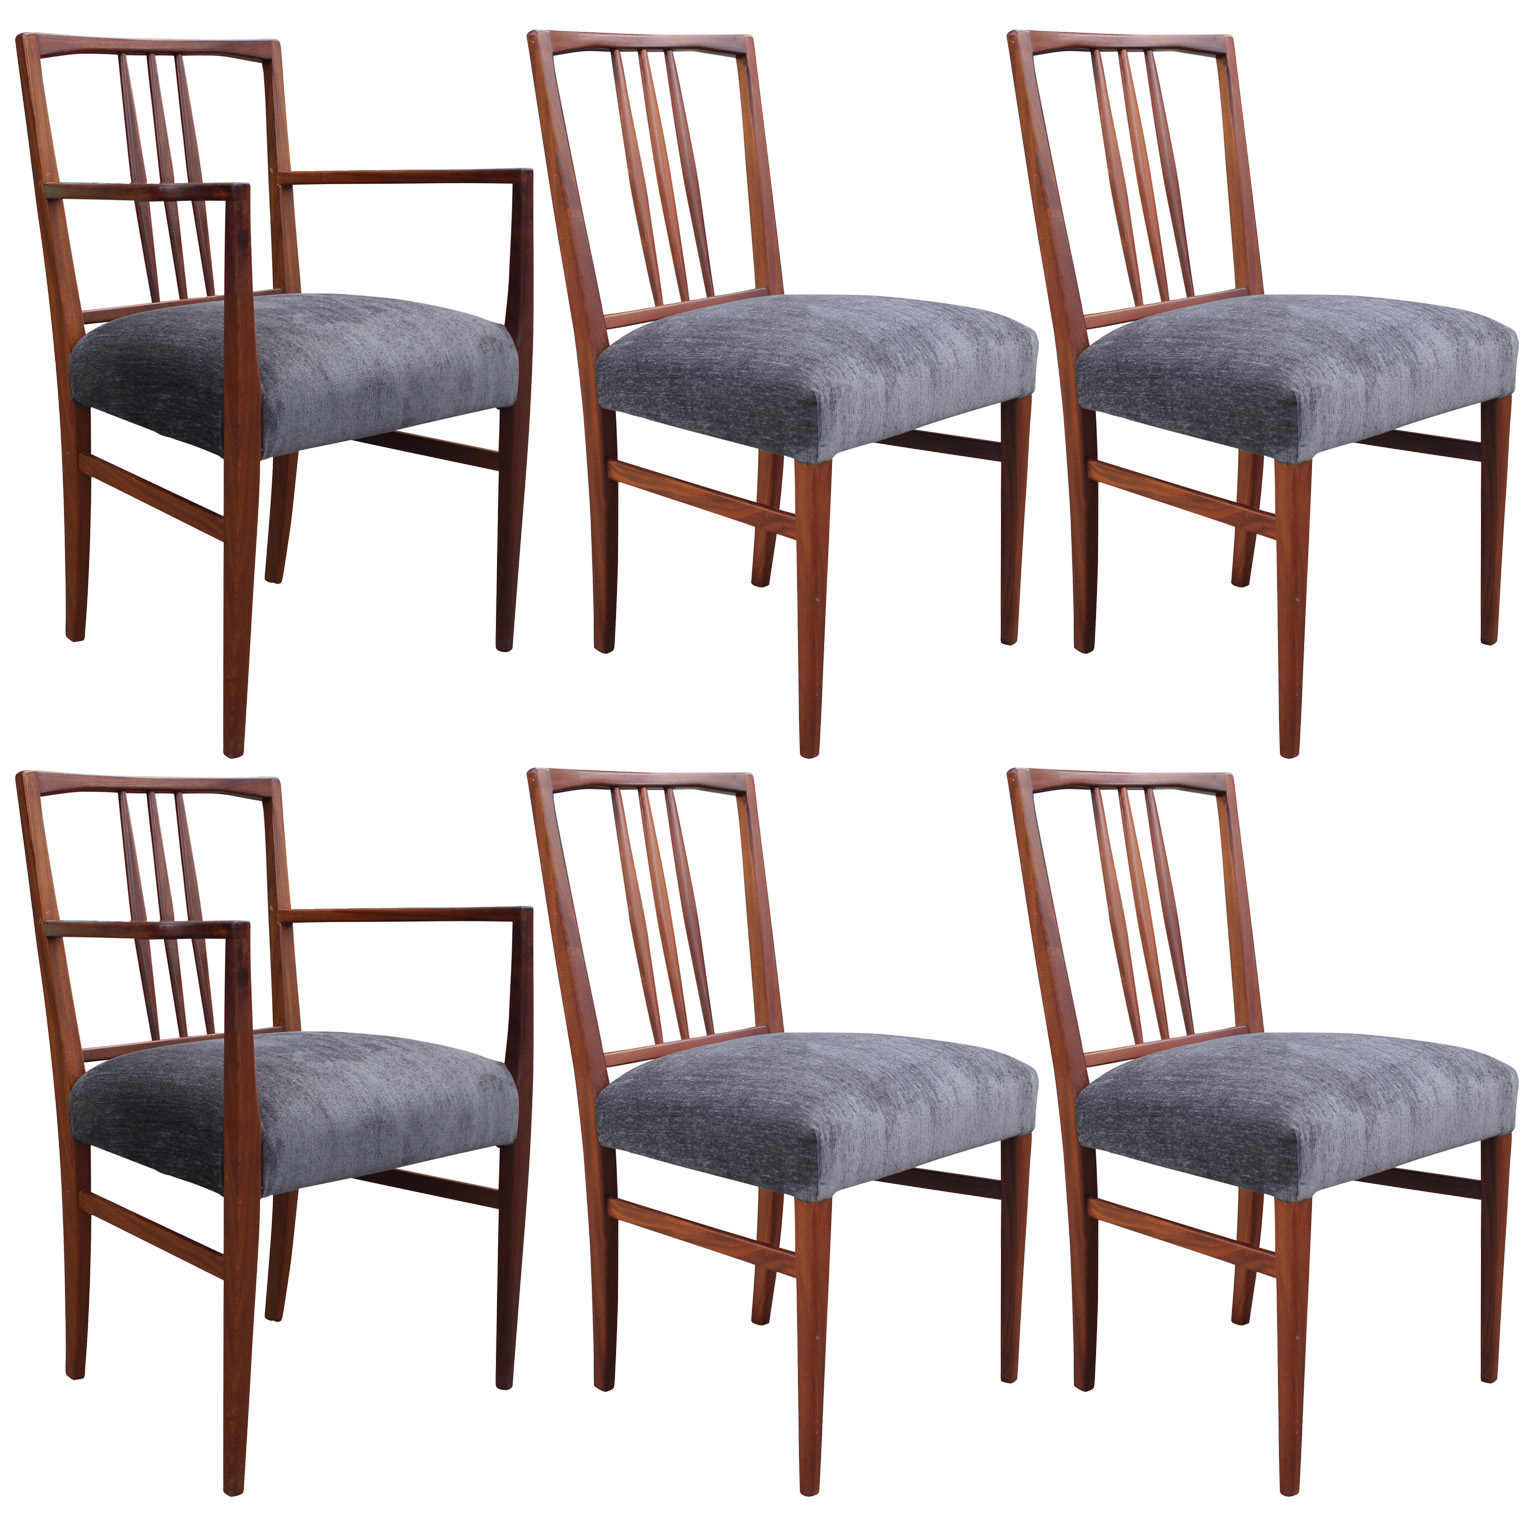 handsome set of six danish style teak dining chairs